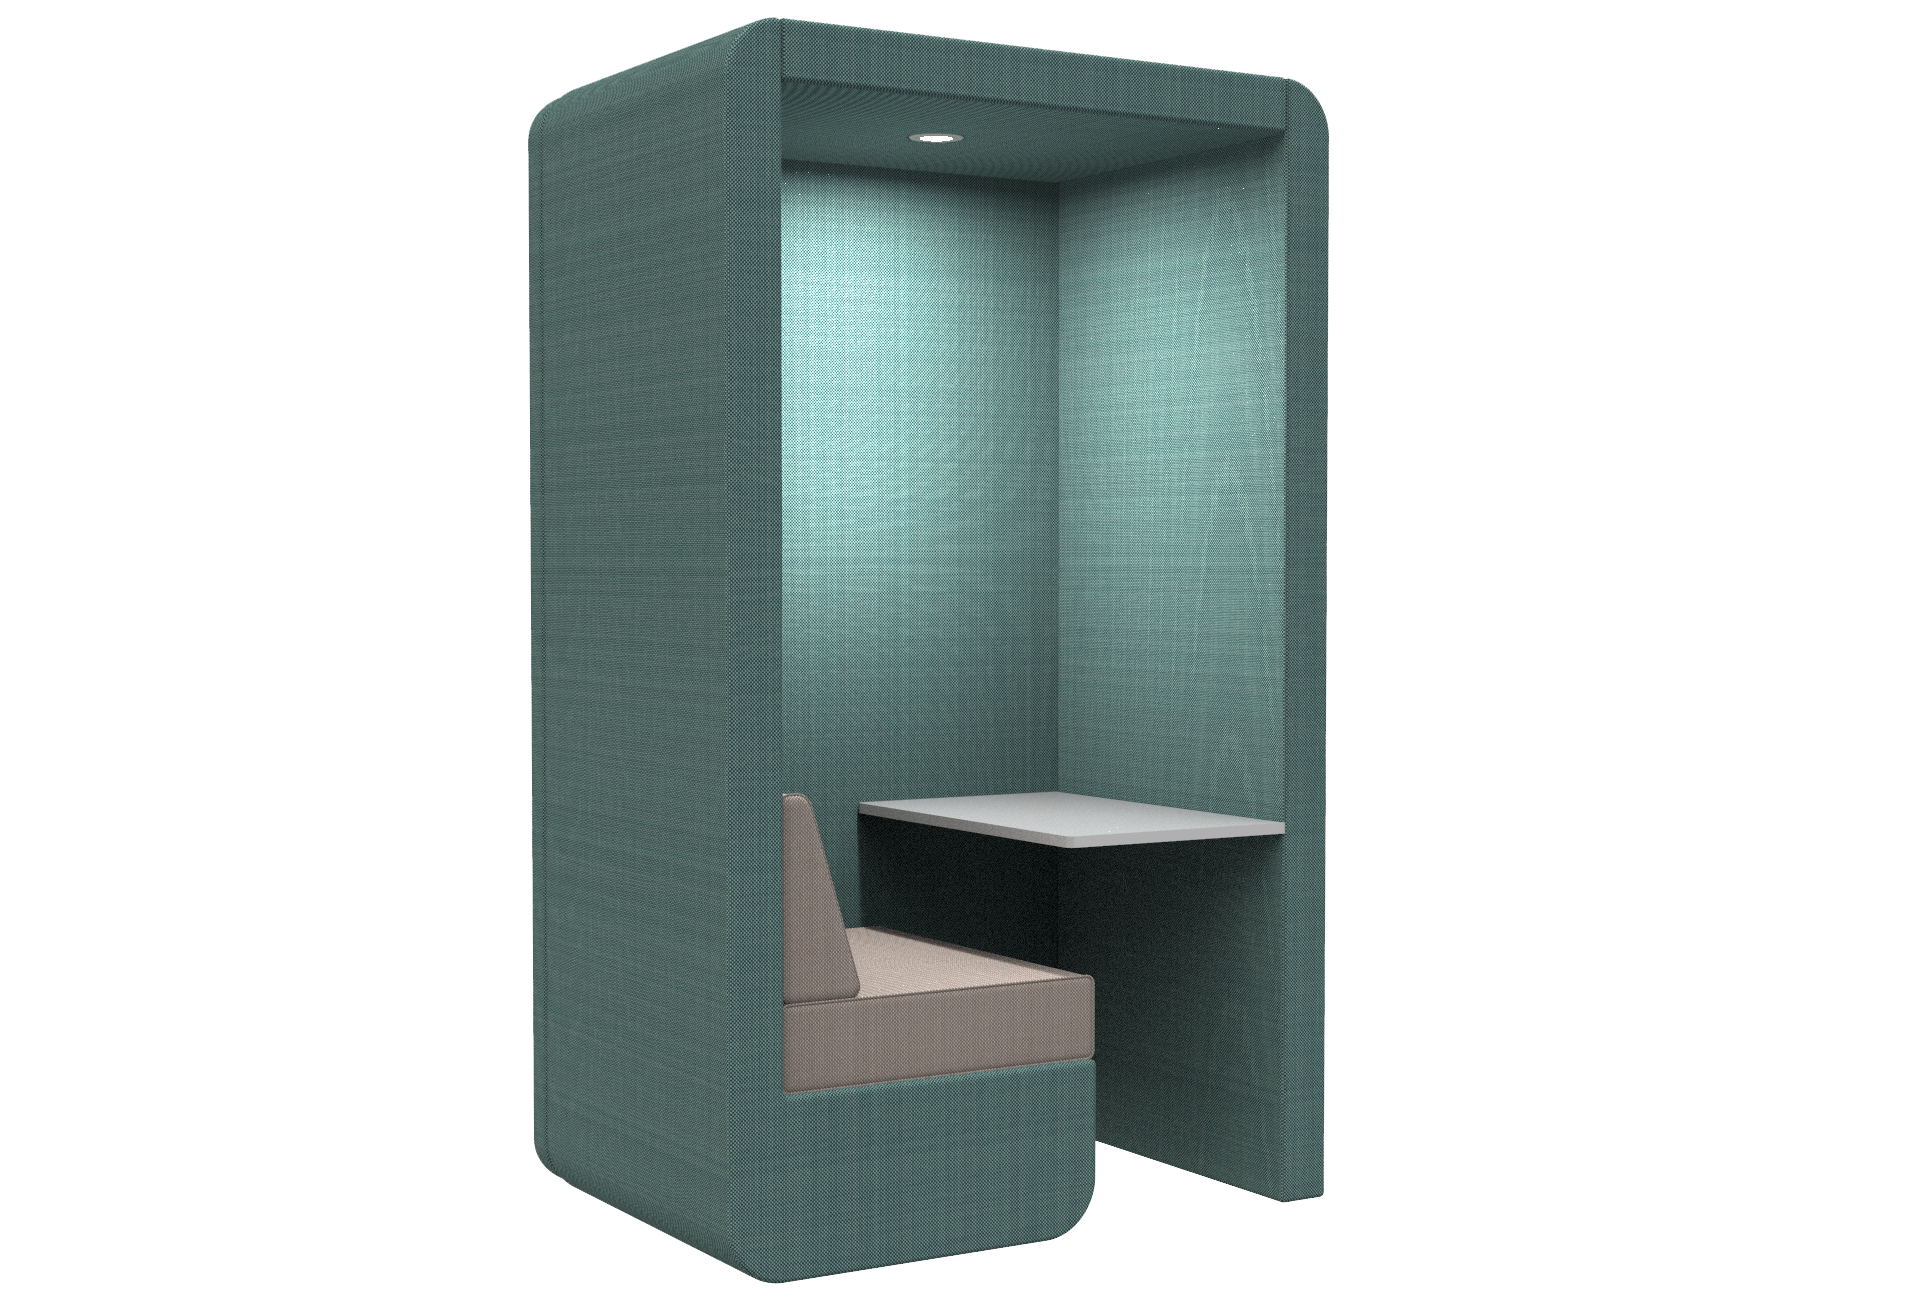 Workbooth no floor and end wall